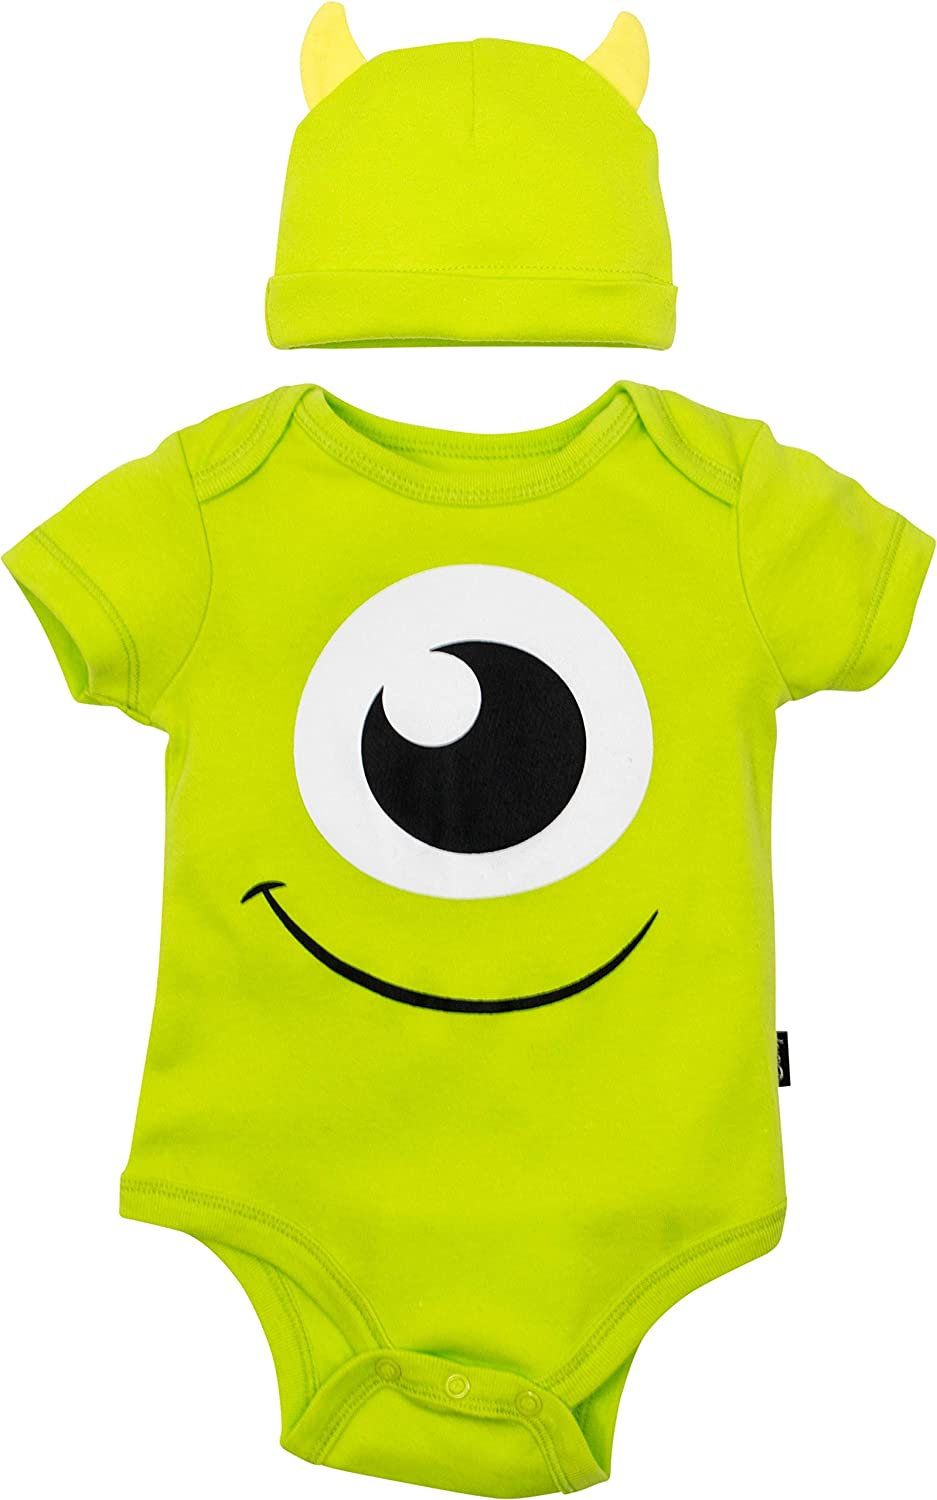 Disney Pixar Monsters Inc. Mike Wazowski Baby Boys' Costume Bodysuit & Hat Green